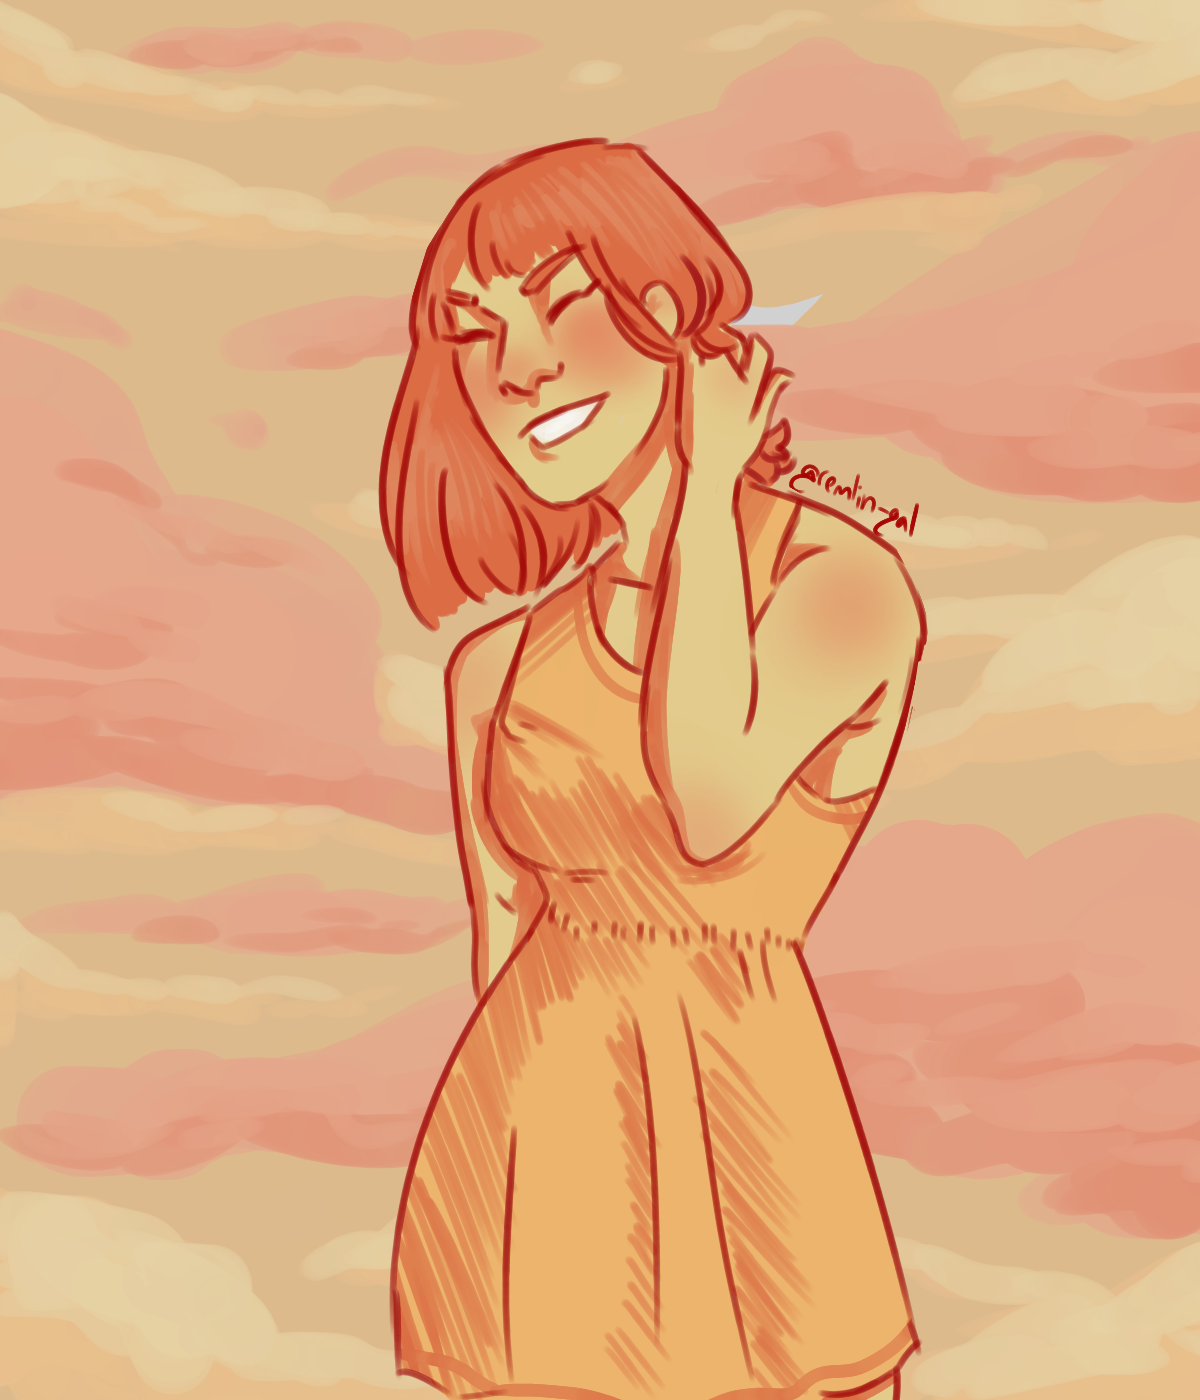 A quick digital painting using a color palette (Rosy Cheeks